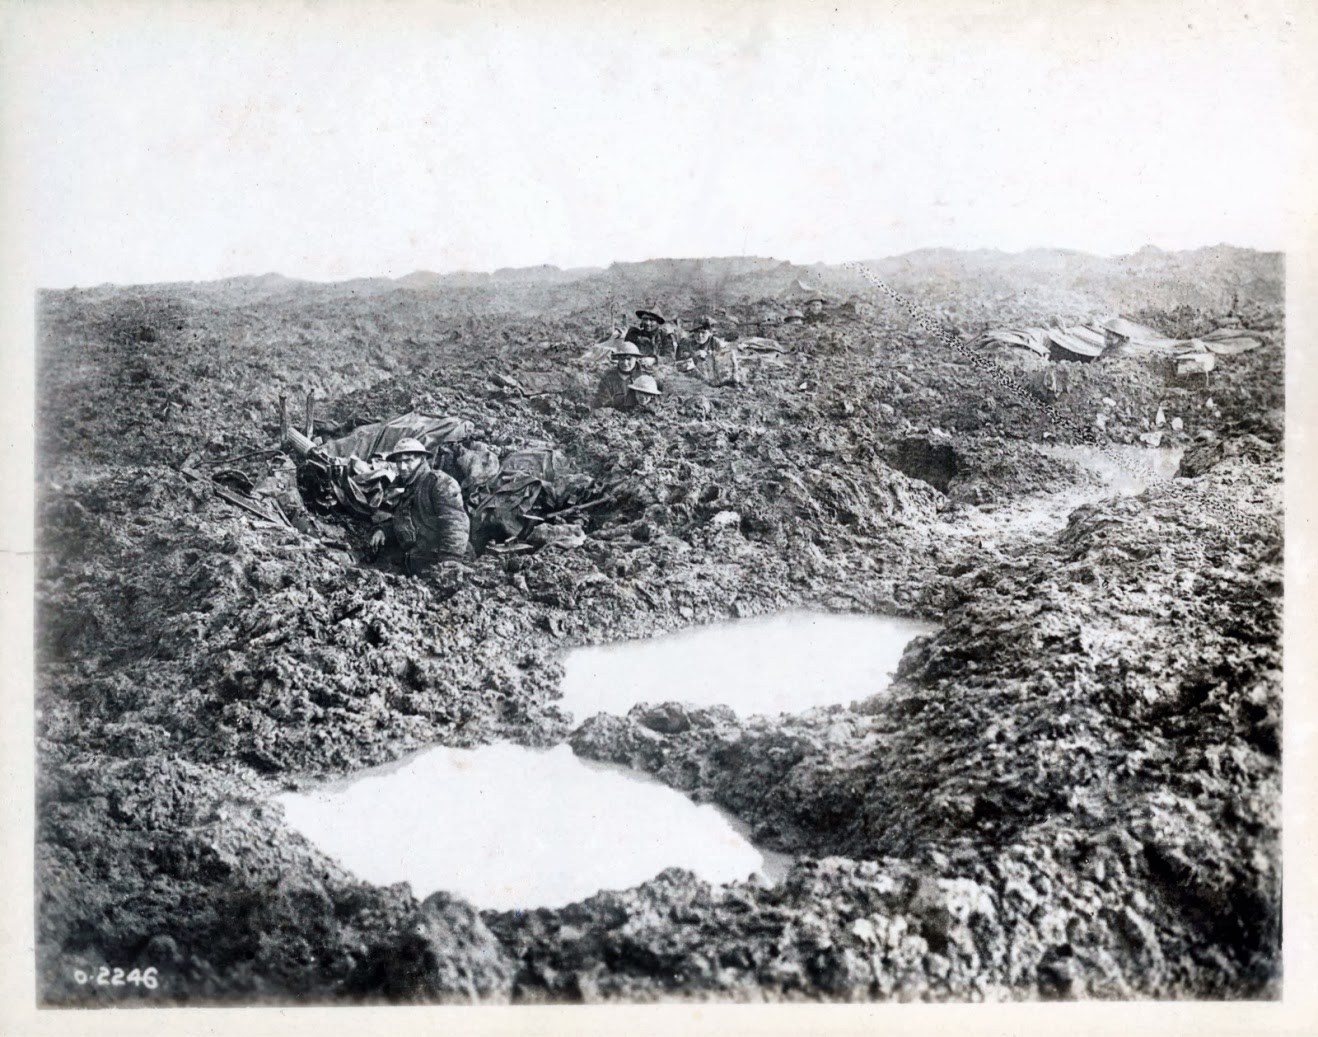 battle of passchendaele essay Explore one of the most infamous battles of ww1 - the battle of passchendaele famous for the scale of casualties, and also for the mud.